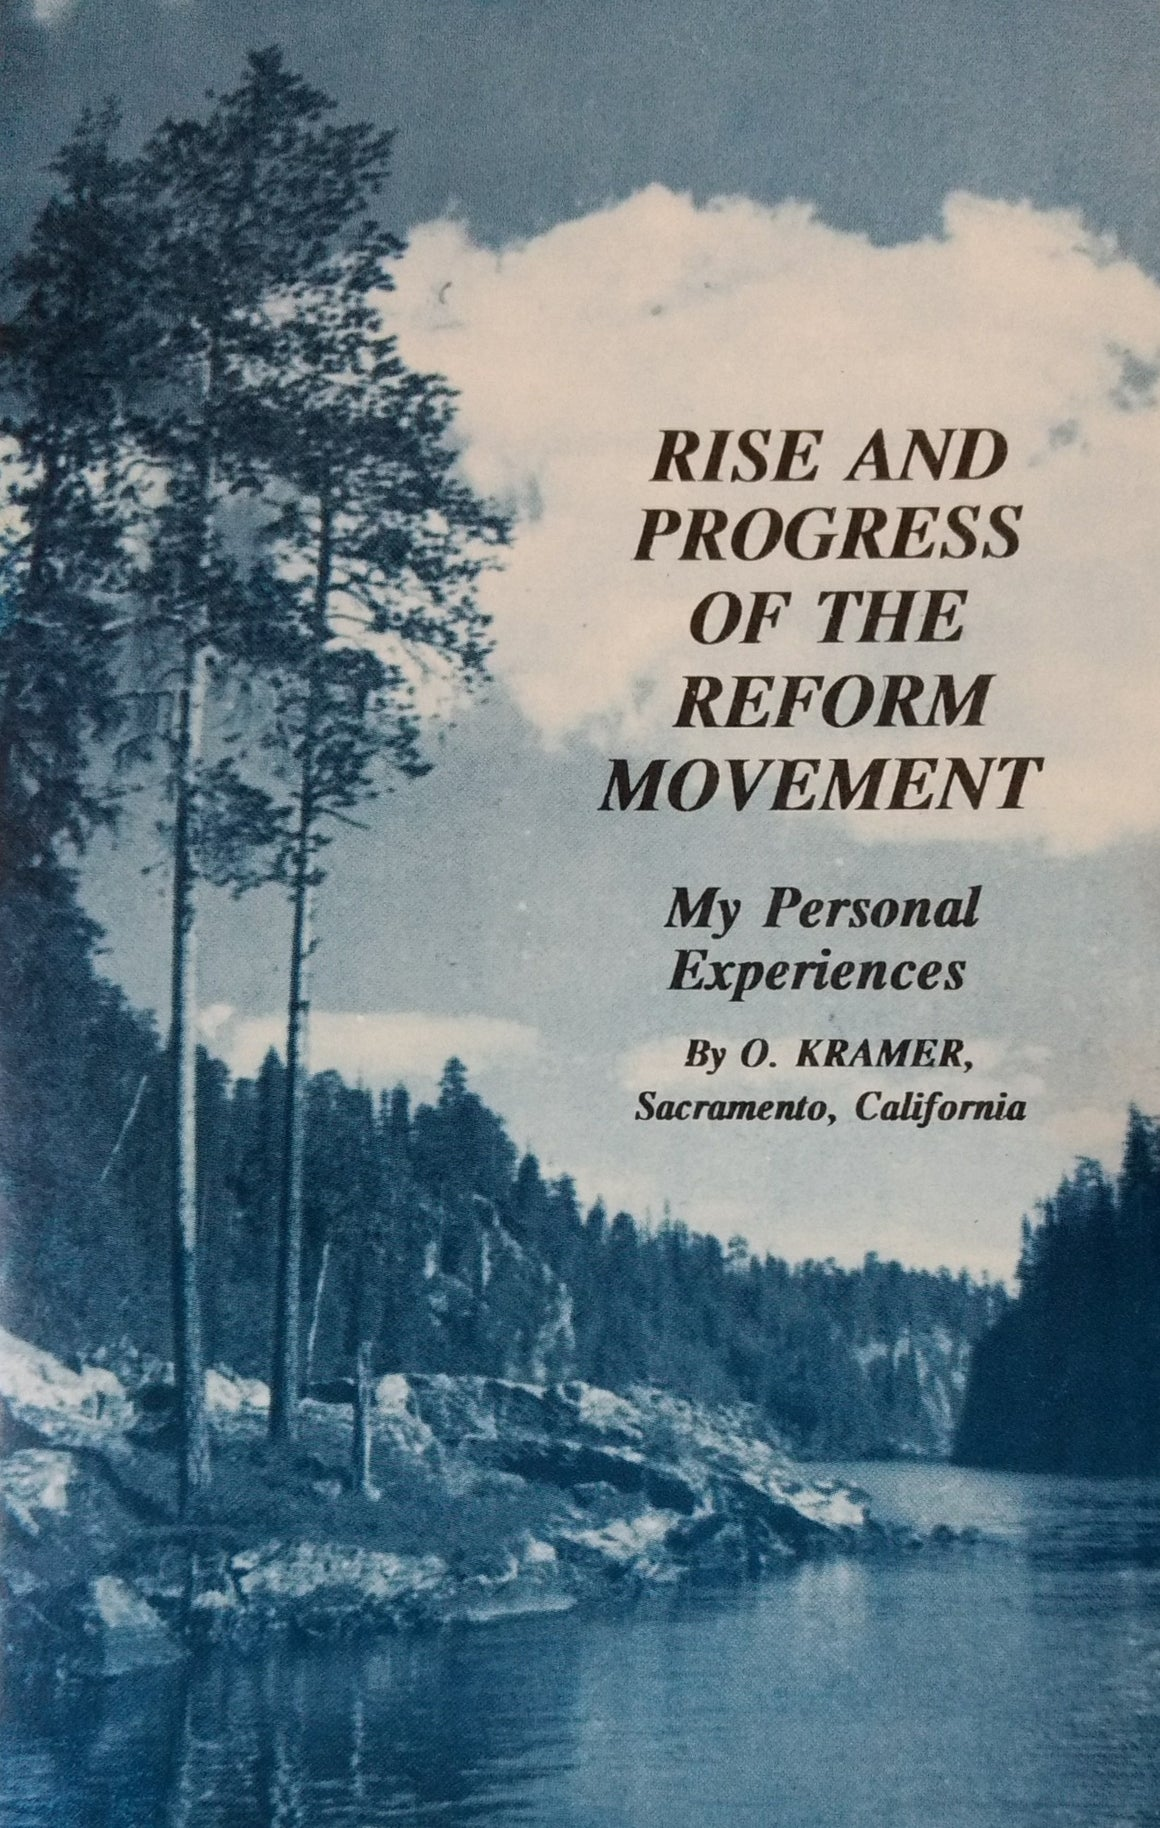 Rise and Progress of the Reform Movement